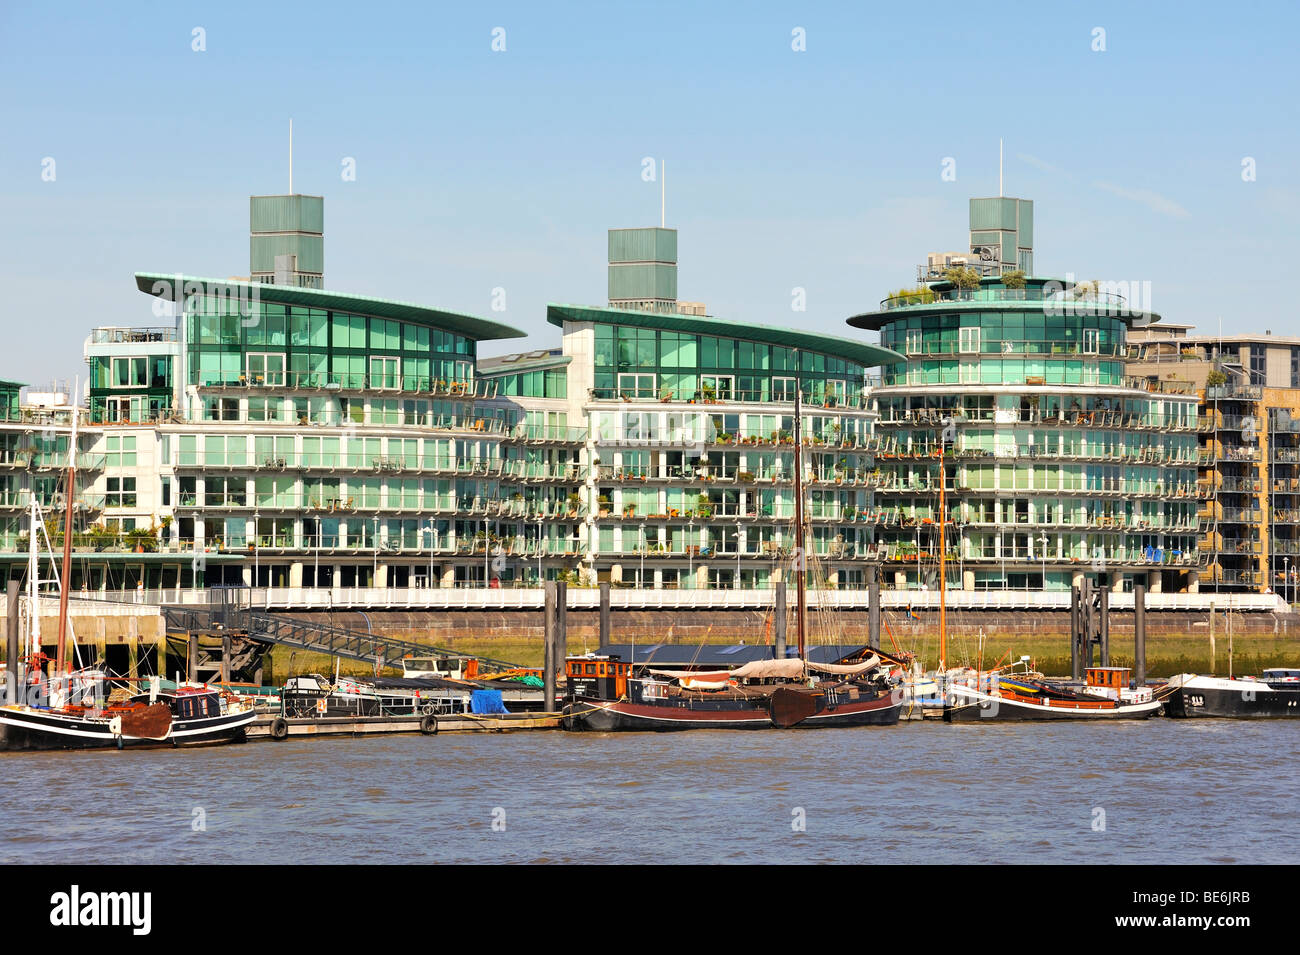 The banks of the Thames, with modern residential buildings, London, England, United Kingdom, Europe - Stock Image